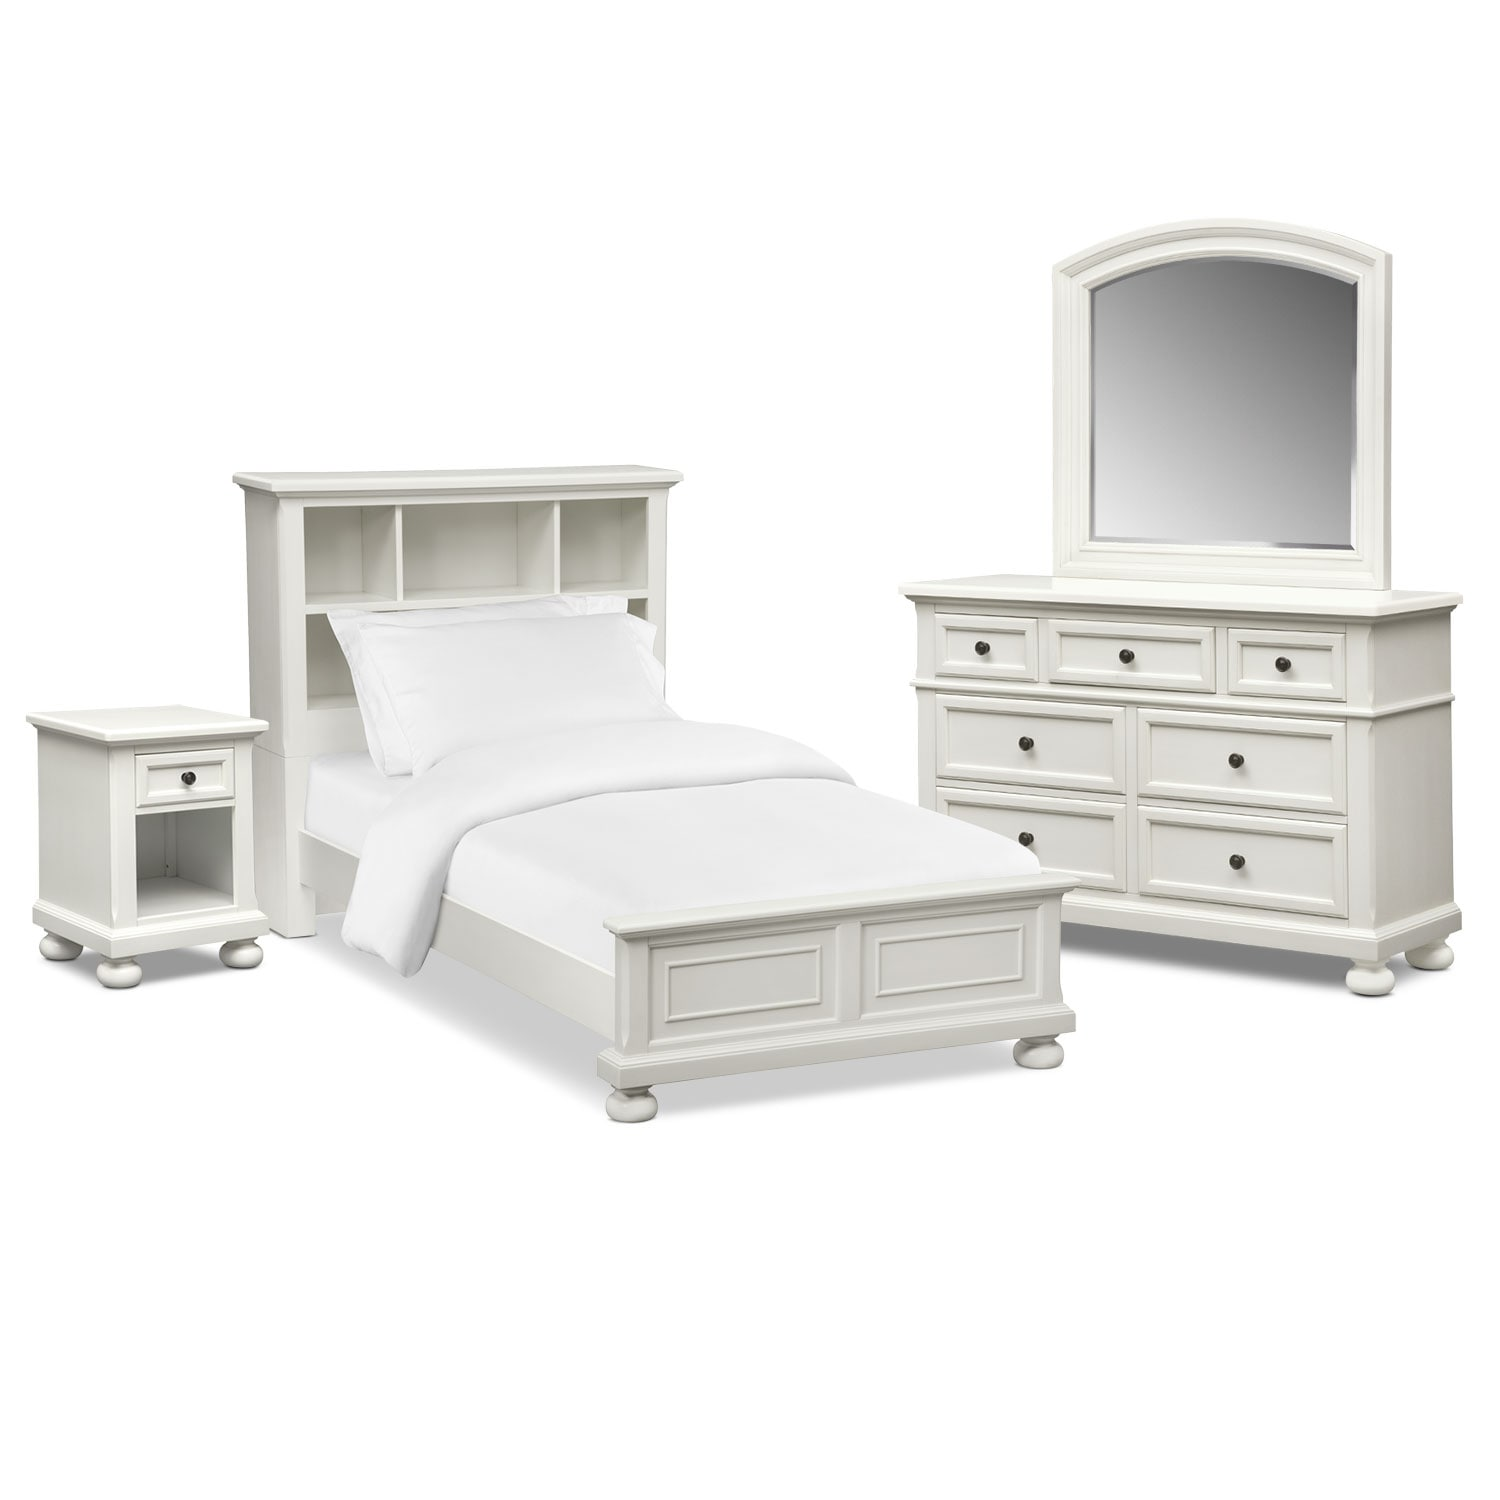 Hanover Youth 6-Piece Twin Bookcase Bedroom Set - White